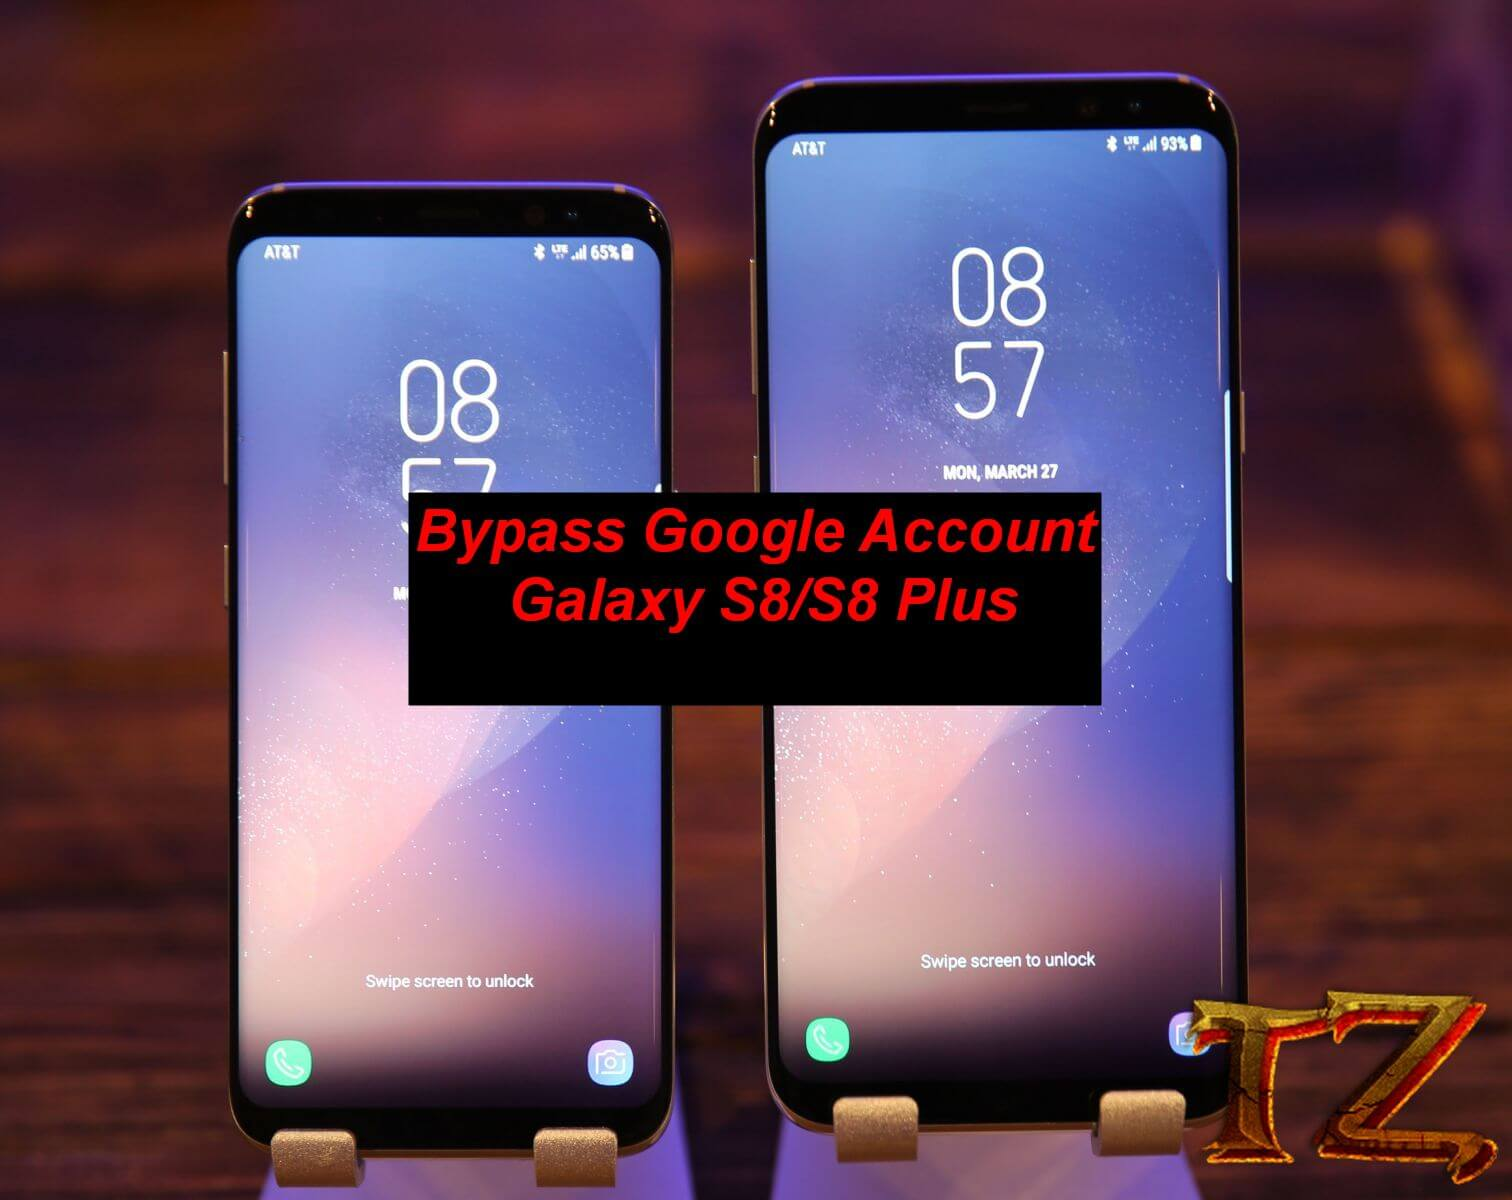 Samsung Galaxy S8/S8 Plus Bypass: Flash Combination ROM, Use APK